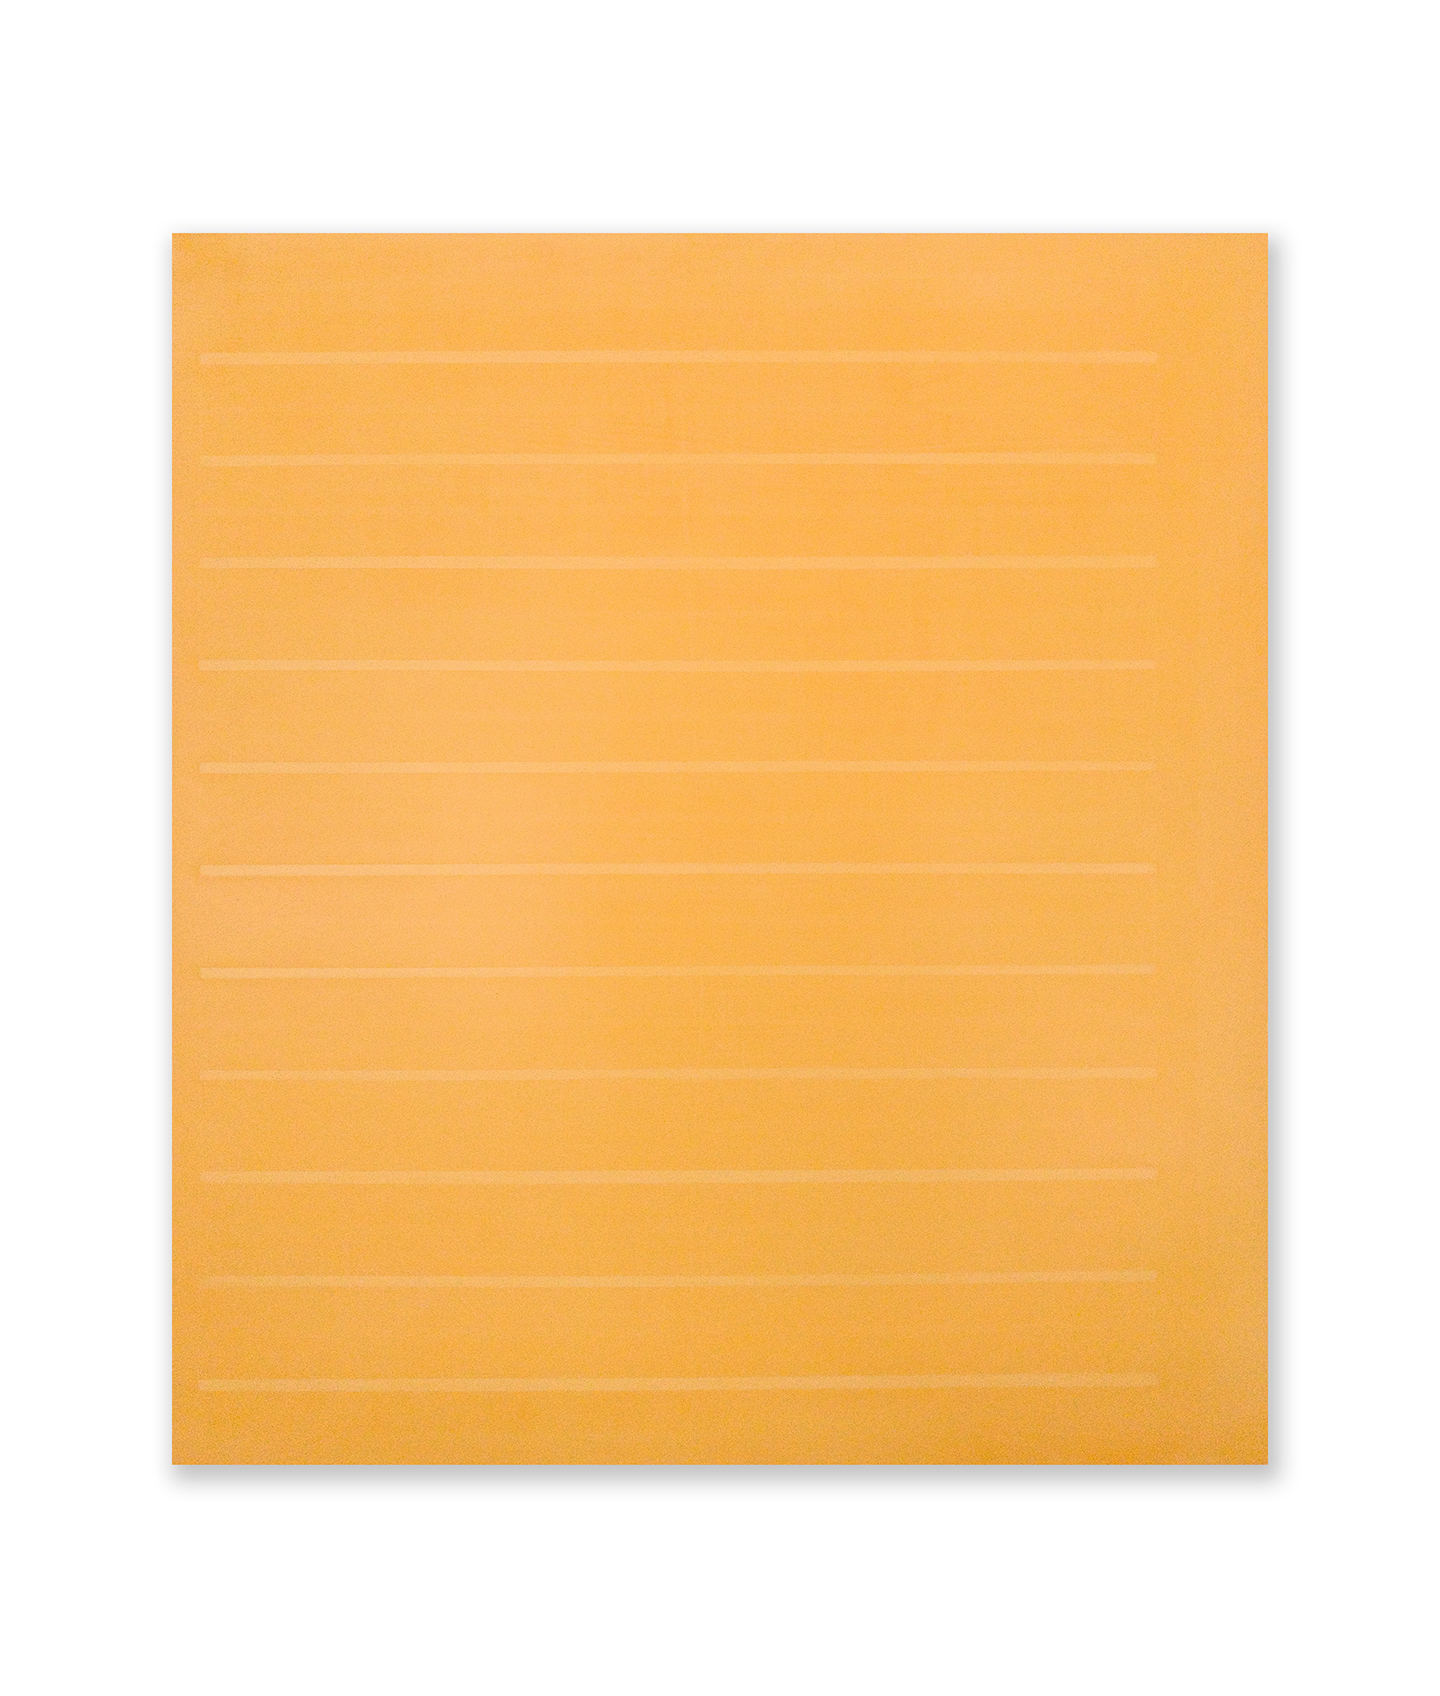 Lined Space Orange